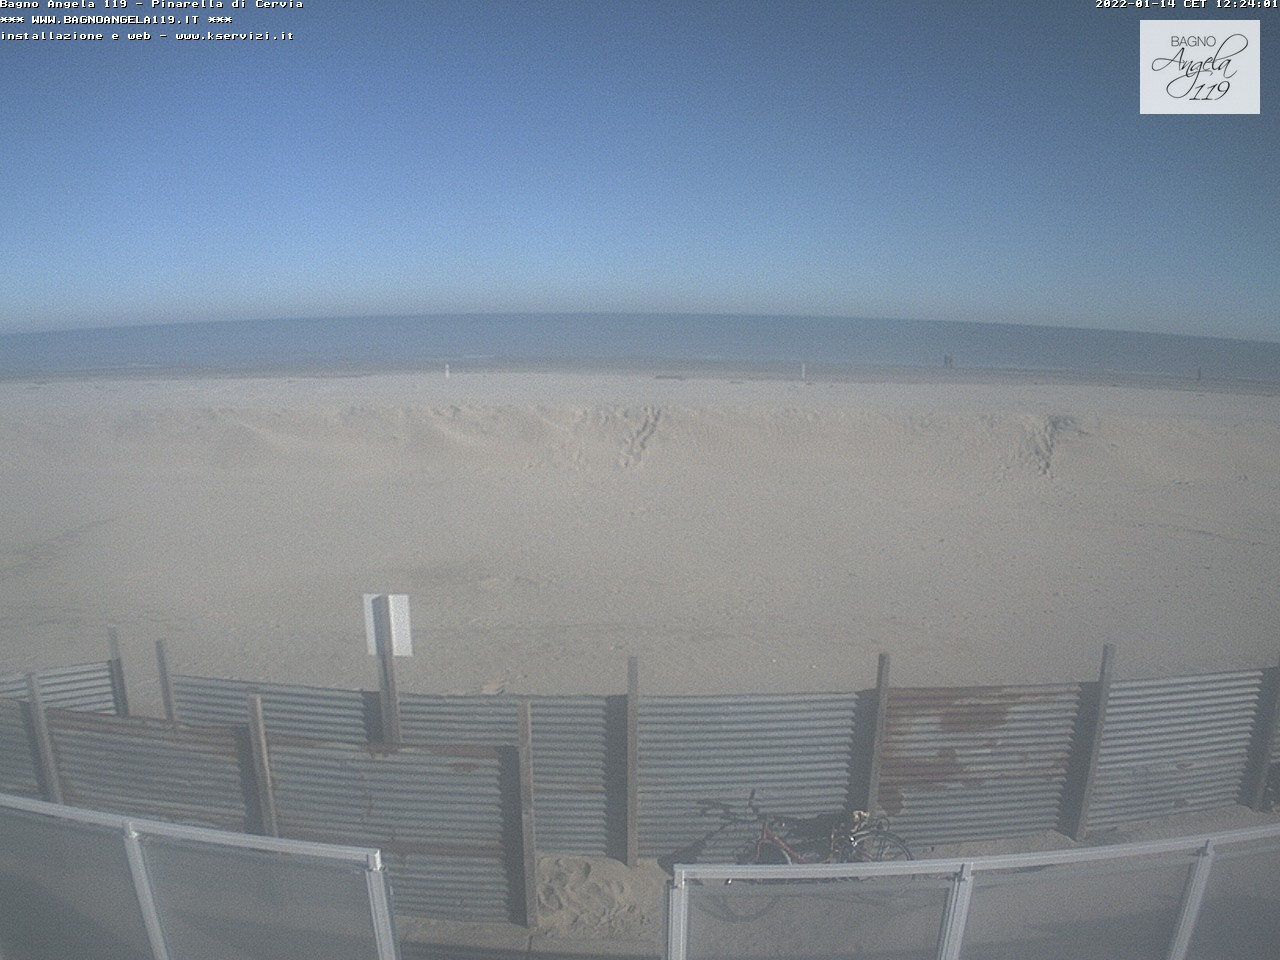 Pinarella di cervia bagno angela strand webcam galore - Bagno palm beach pinarella ...